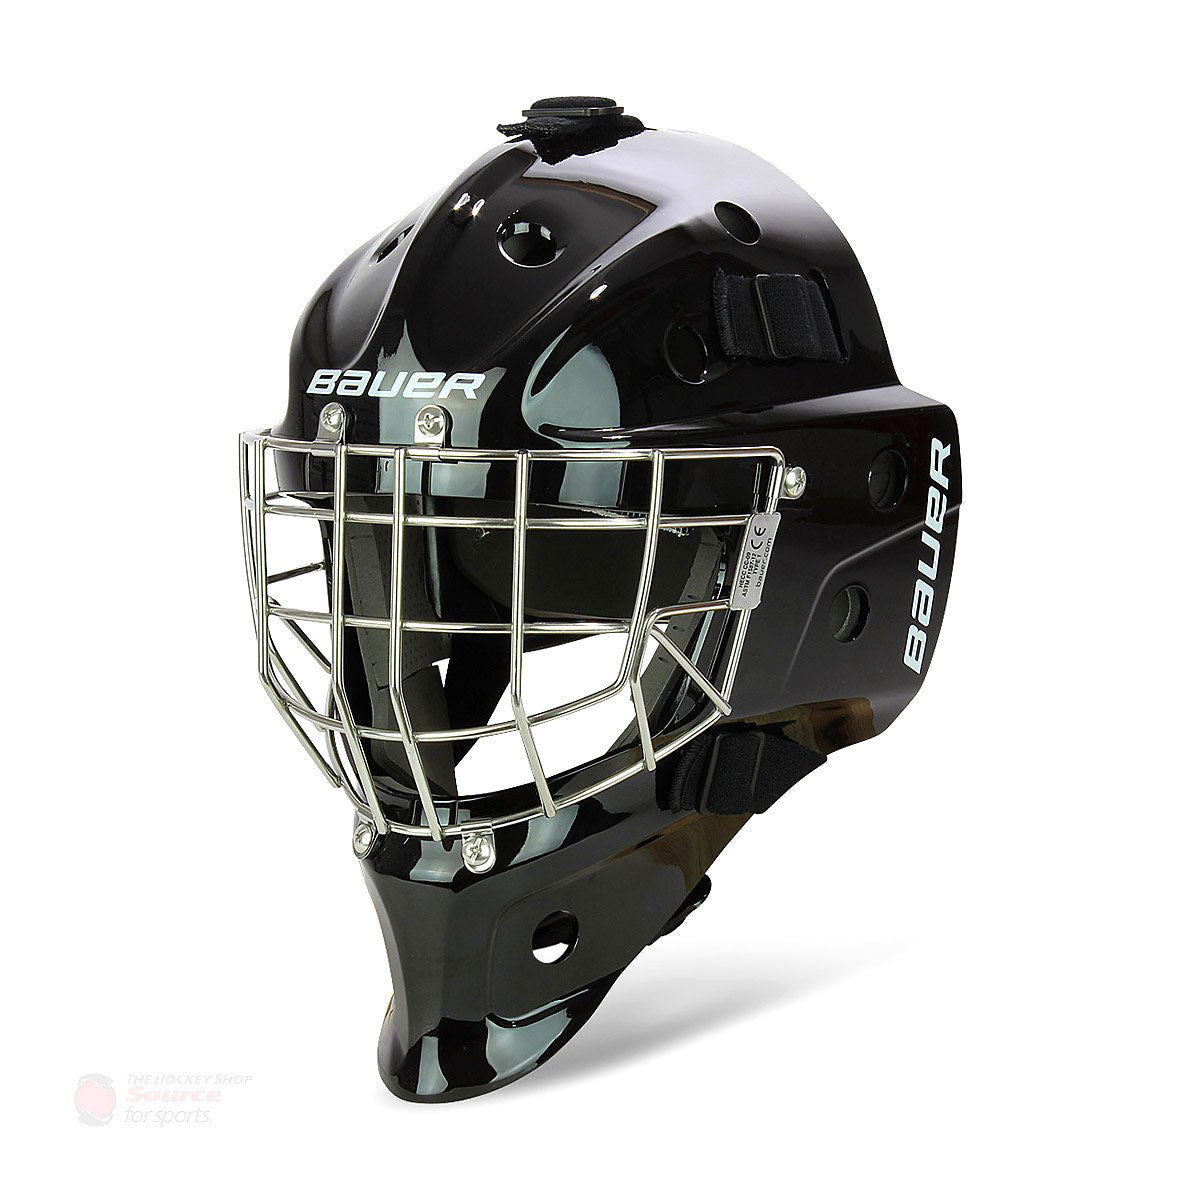 Bauer Profile 940X Senior Goalie Mask - Black